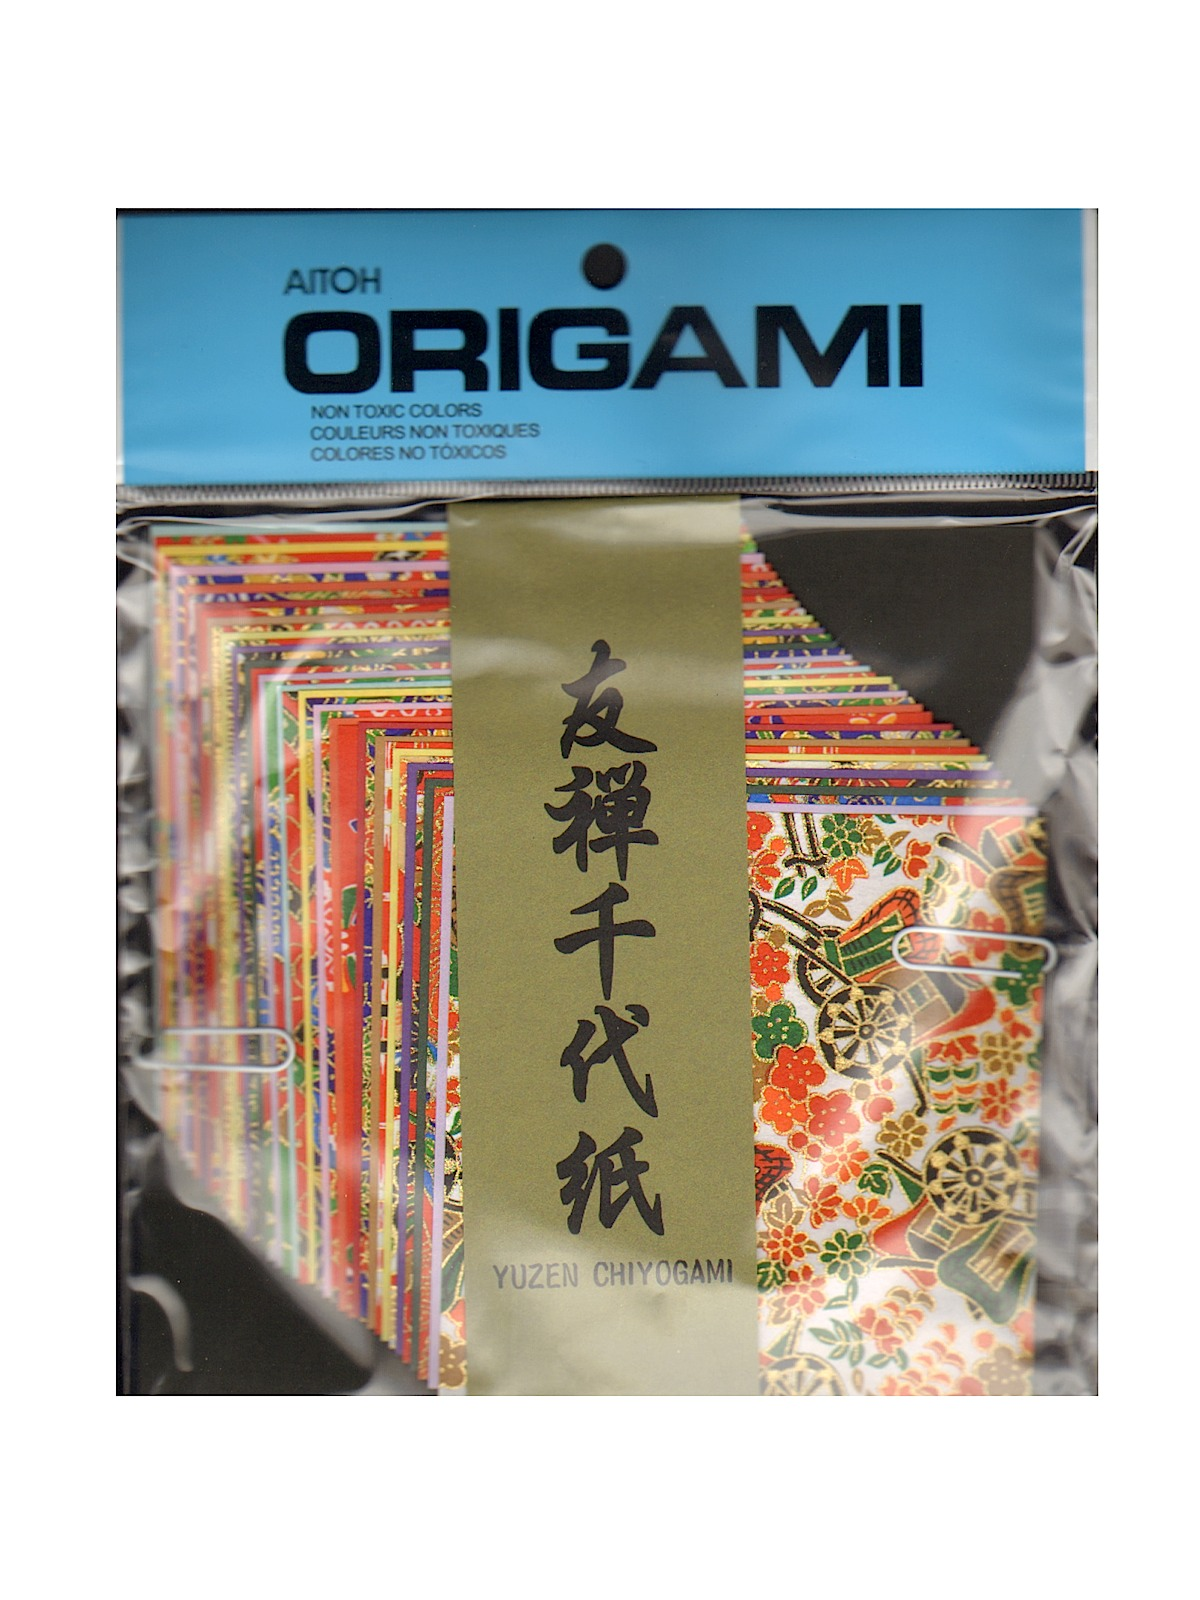 Origami Paper 4 1 2 In. X 4 1 2 In. Yusen Chiyogami Washi 40 Sheets